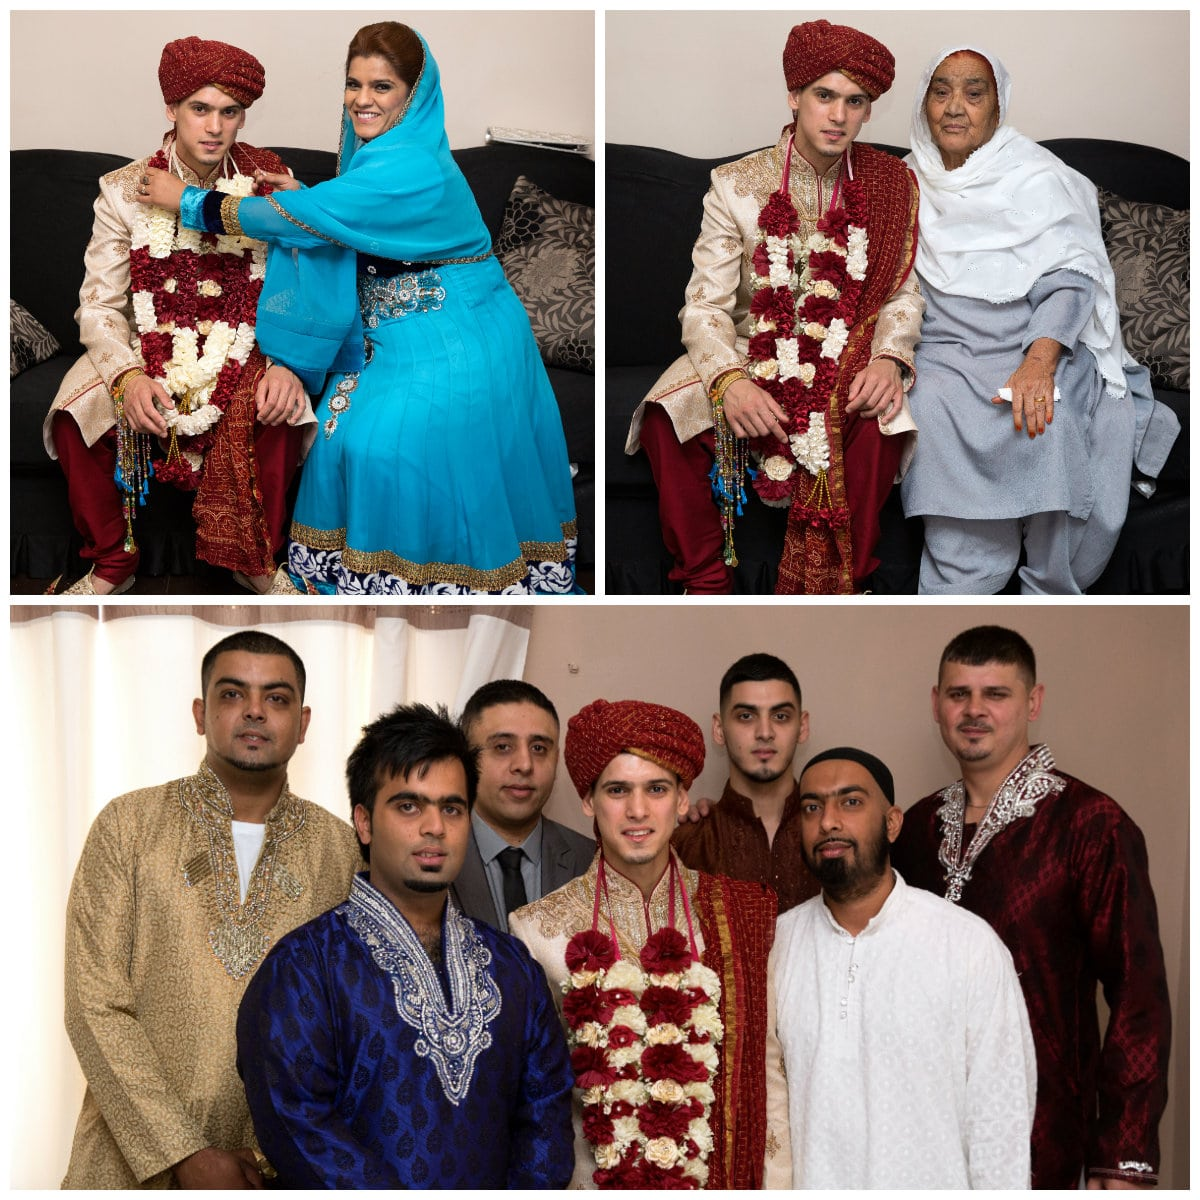 Muslim wedding photography and videography west midlands